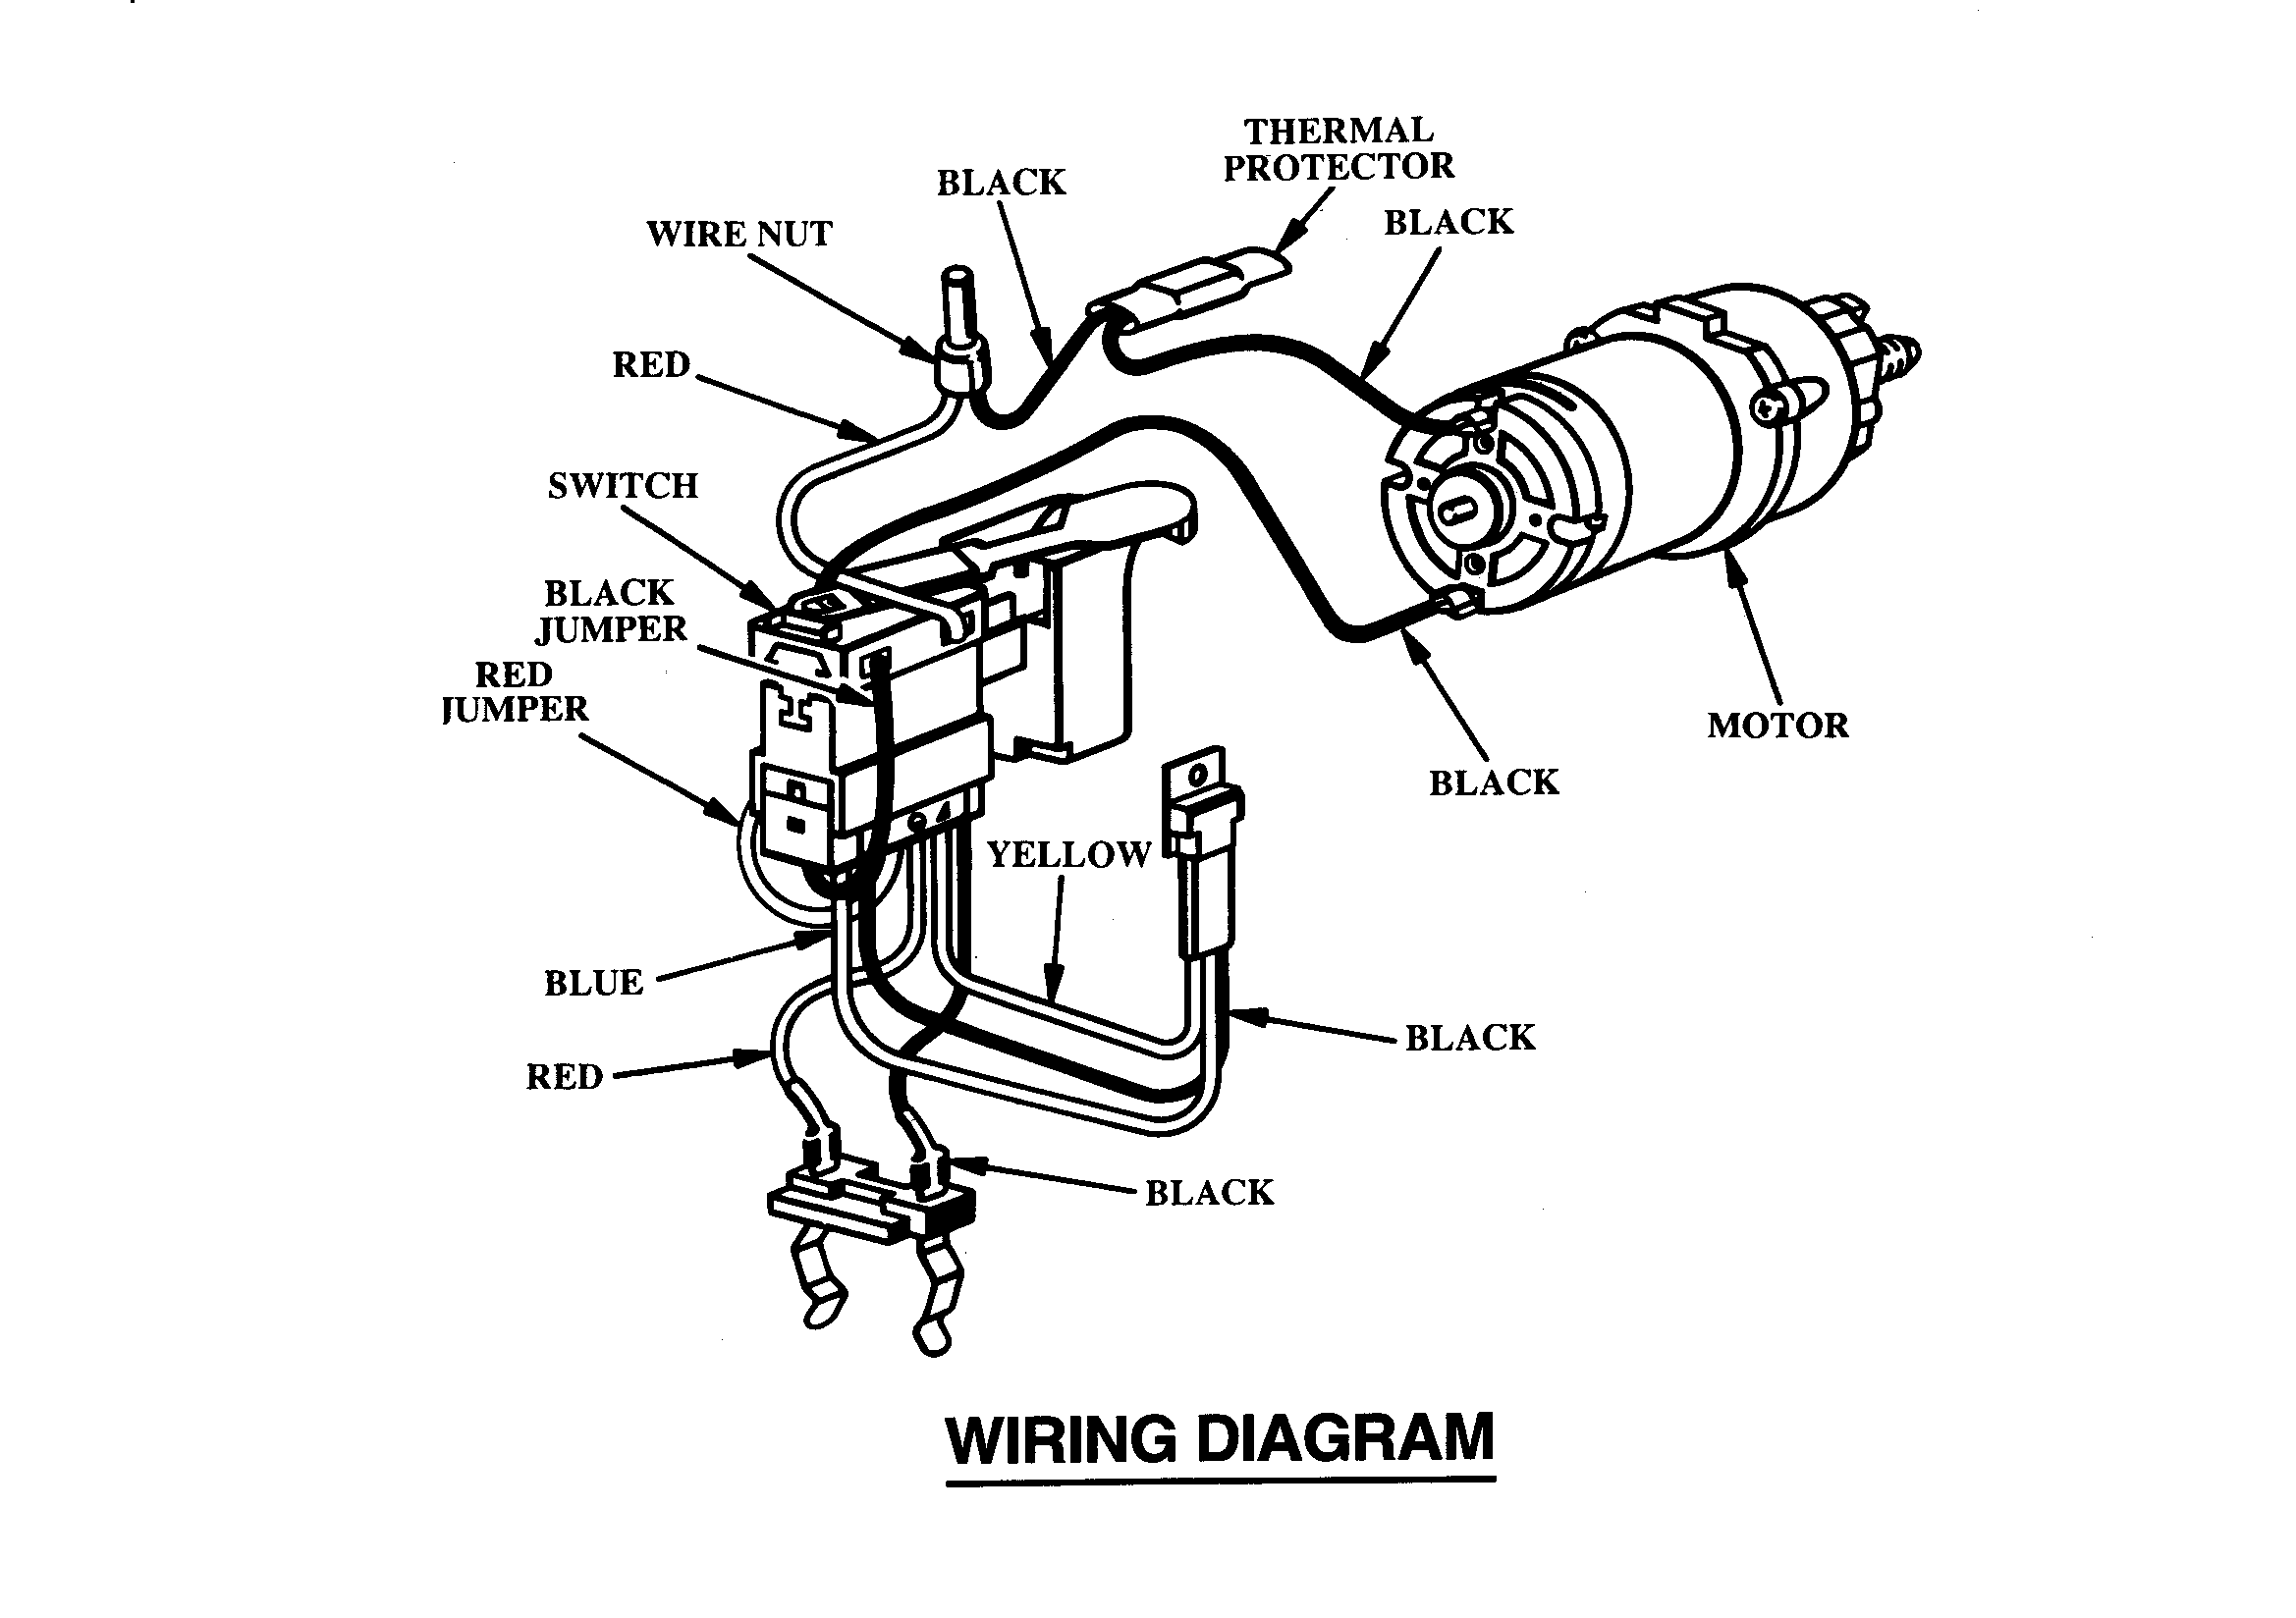 WIRING DIAGRAM Diagram & Parts List for Model 315274880